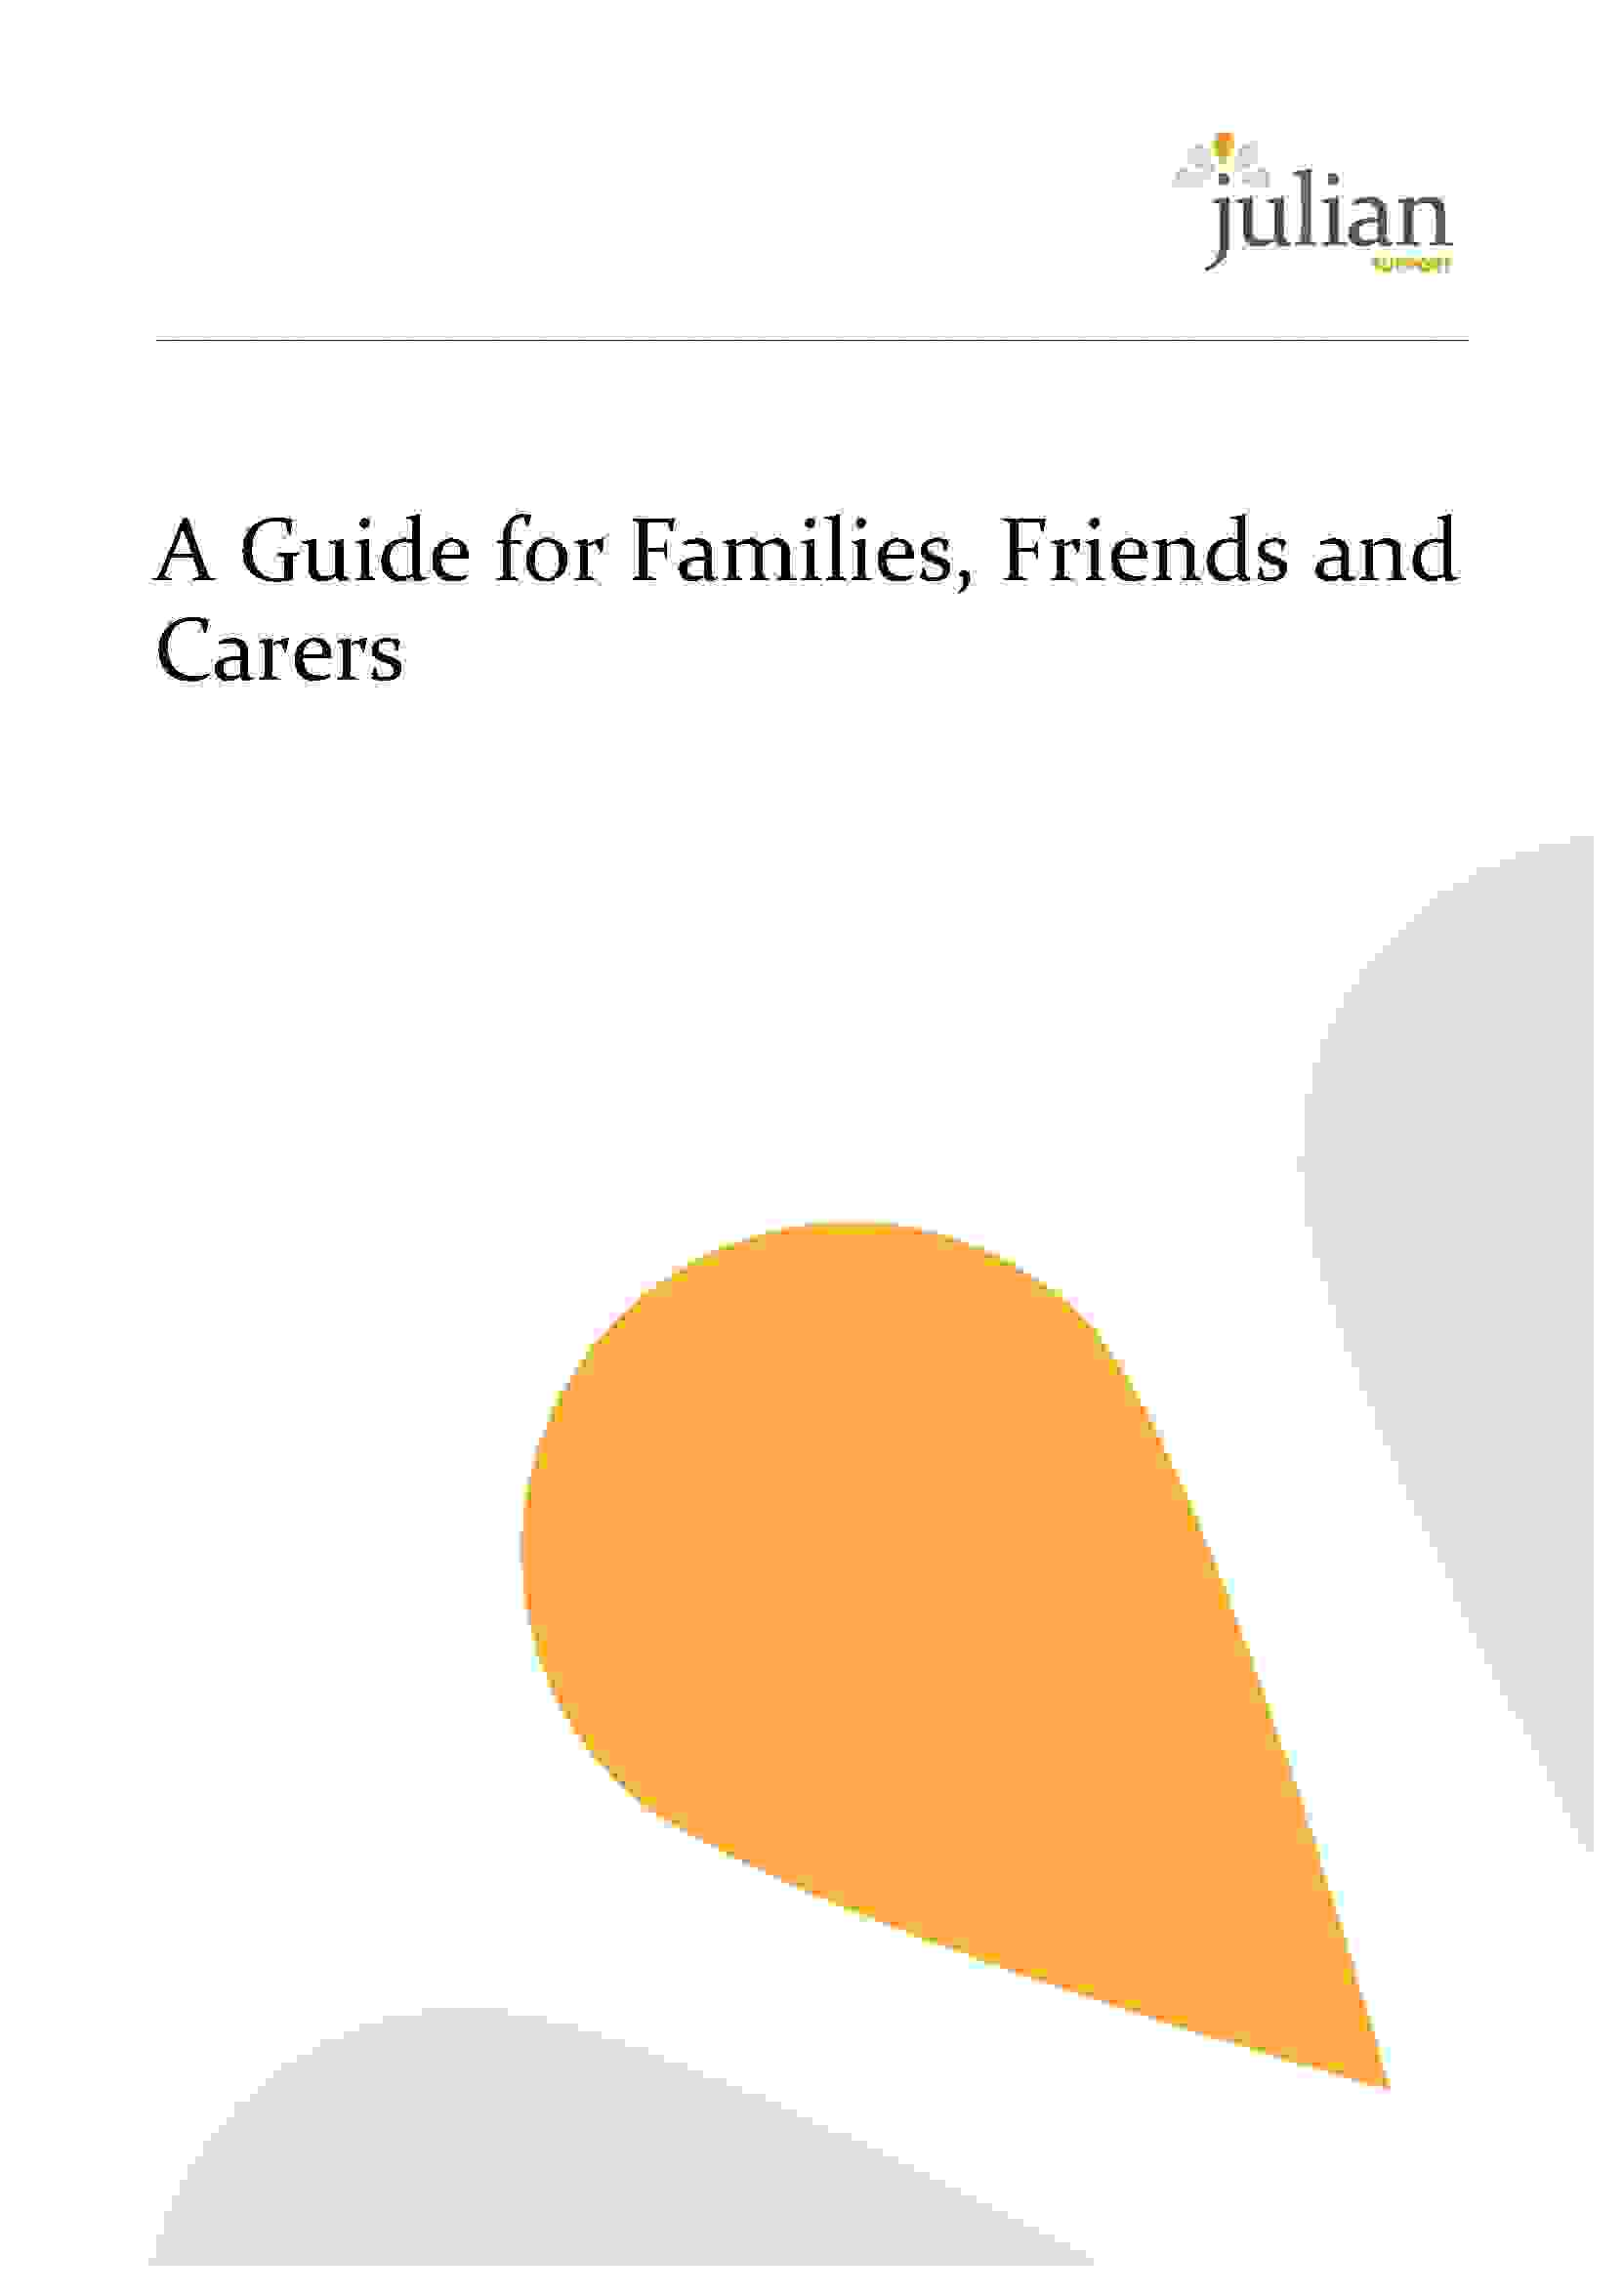 A Guide for Families, Friends and Carers